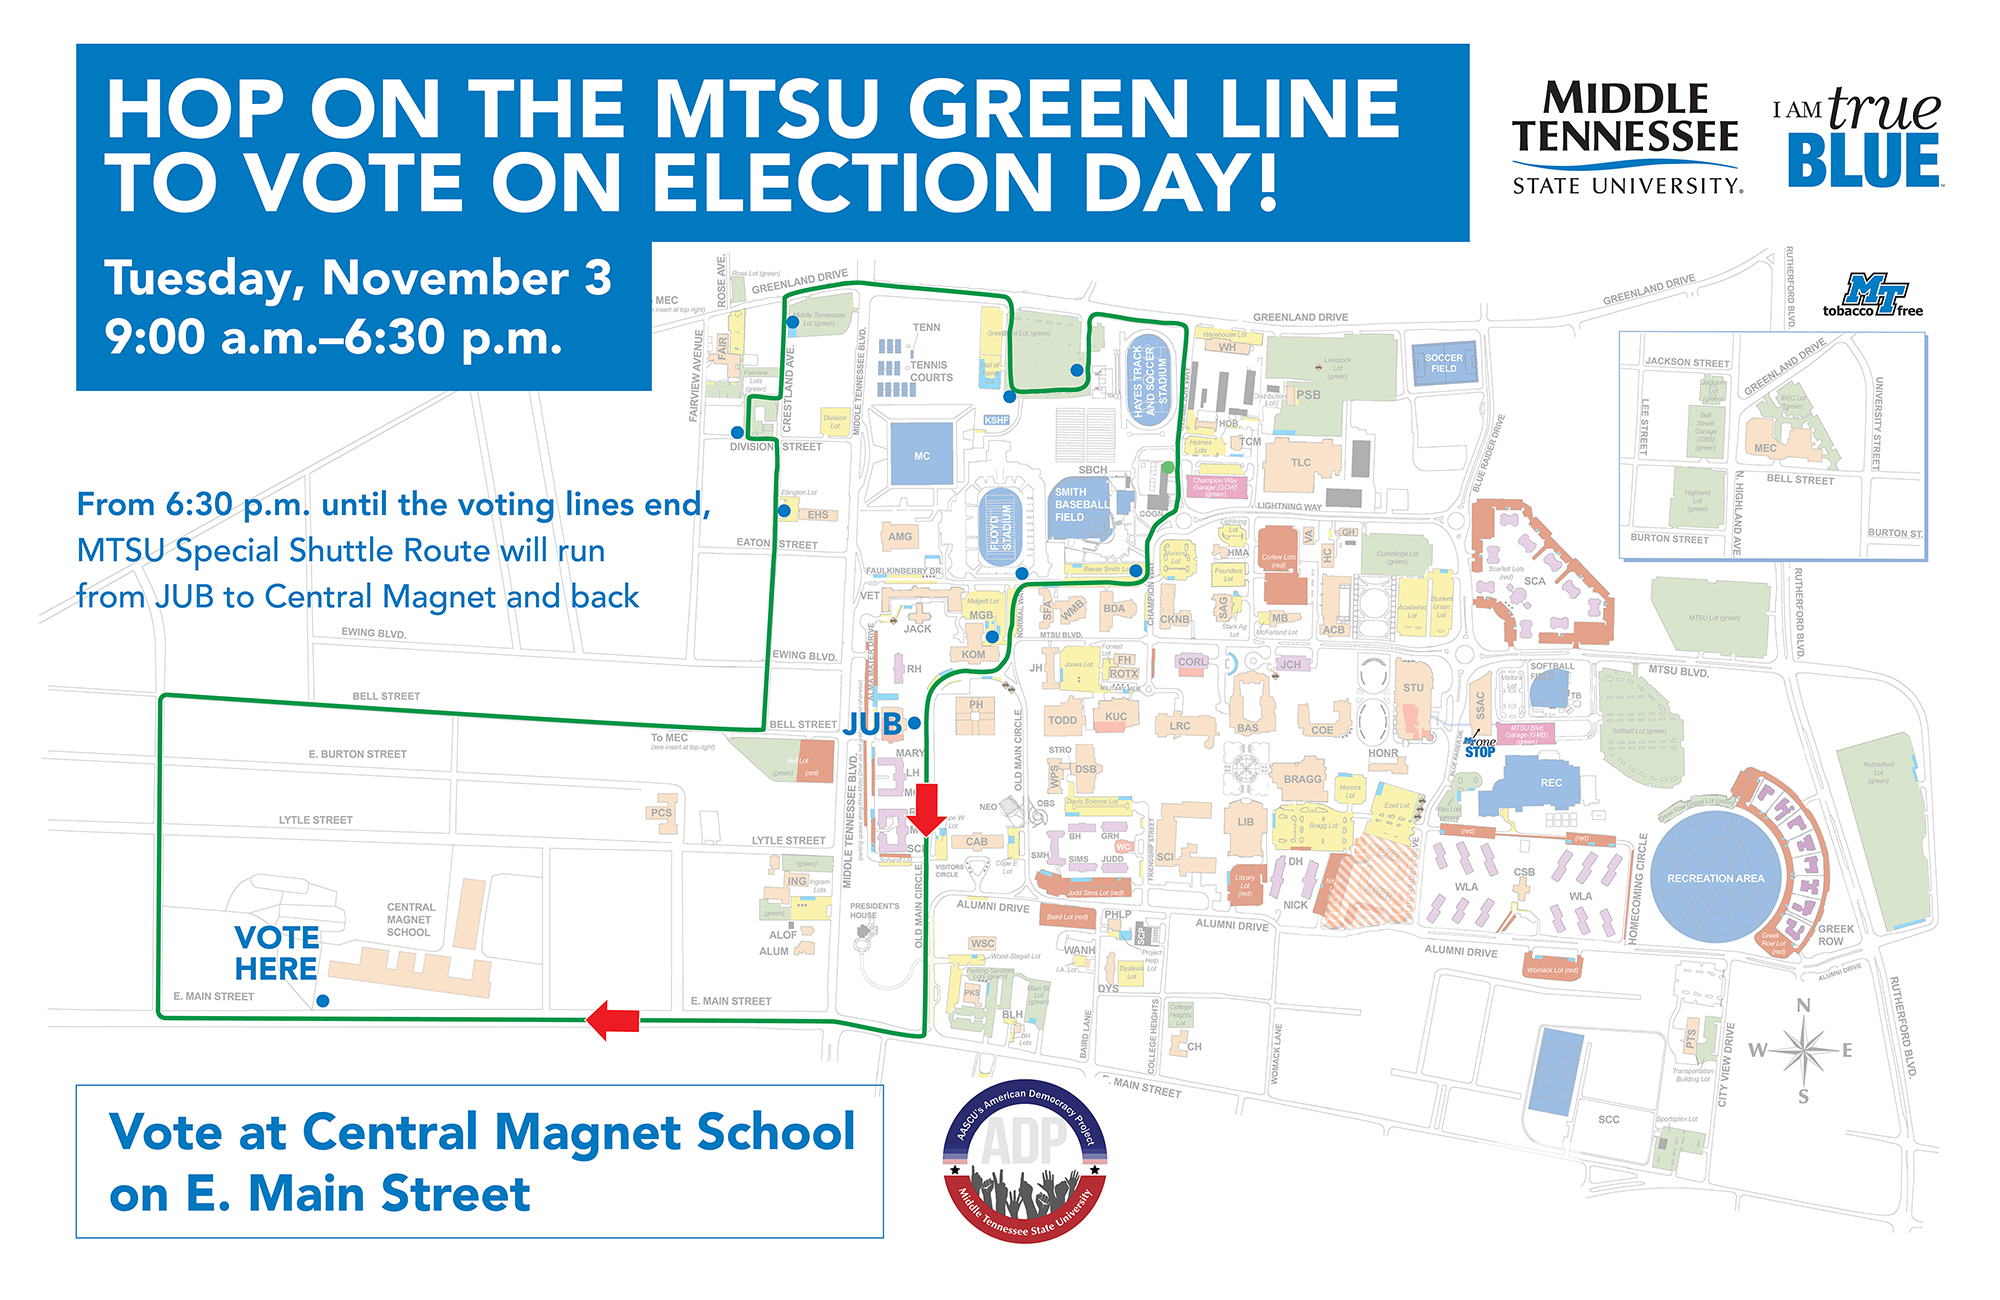 This map of the MTSU campus and a small area east of campus shows the route of a free Election Day 2020 shuttle that will take MTSU voters from the university to Central Magnet School to vote from 9 a.m. to 6:30 p.m. Nov. 3. Click on the map for a closer look.